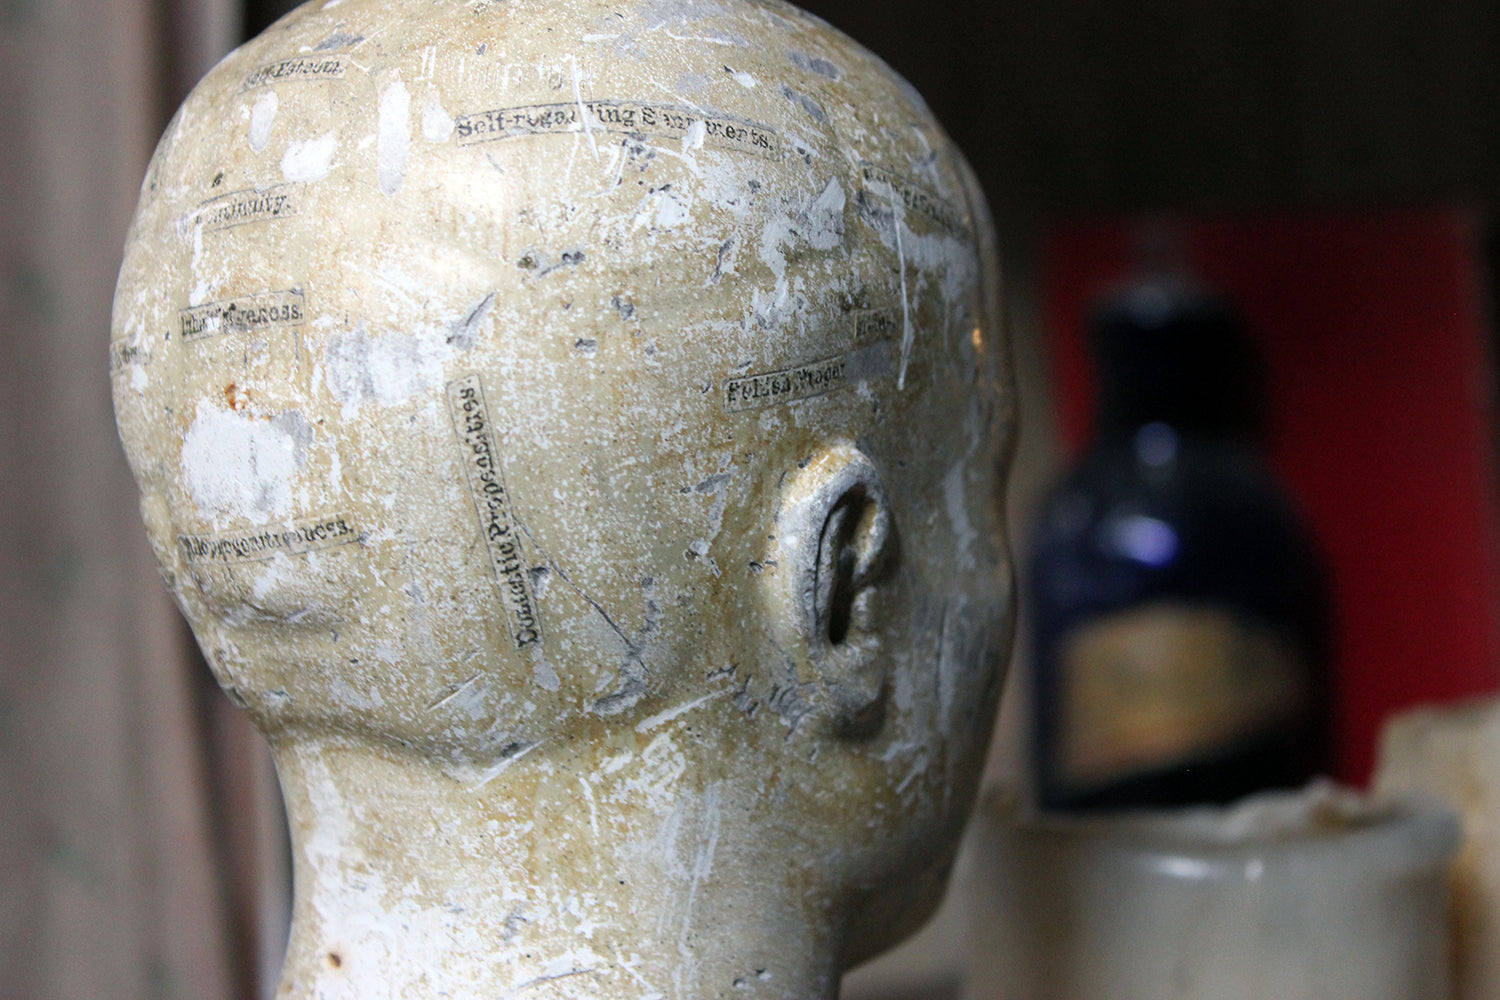 A Scarce Plaster Phrenology Bust Prepared by A.L. Vago (1839-1896) of Gray's Inn Road, London & Dated to 1883